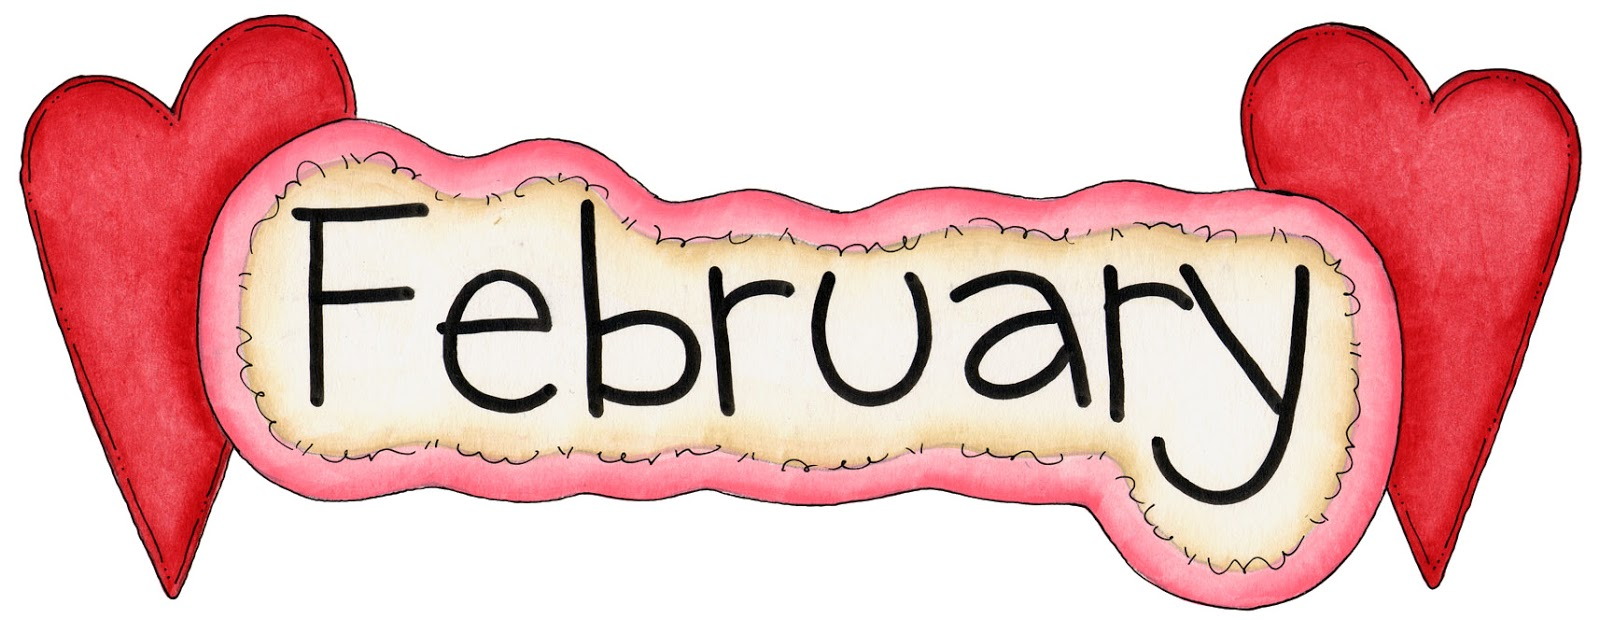 February clipart transparent.